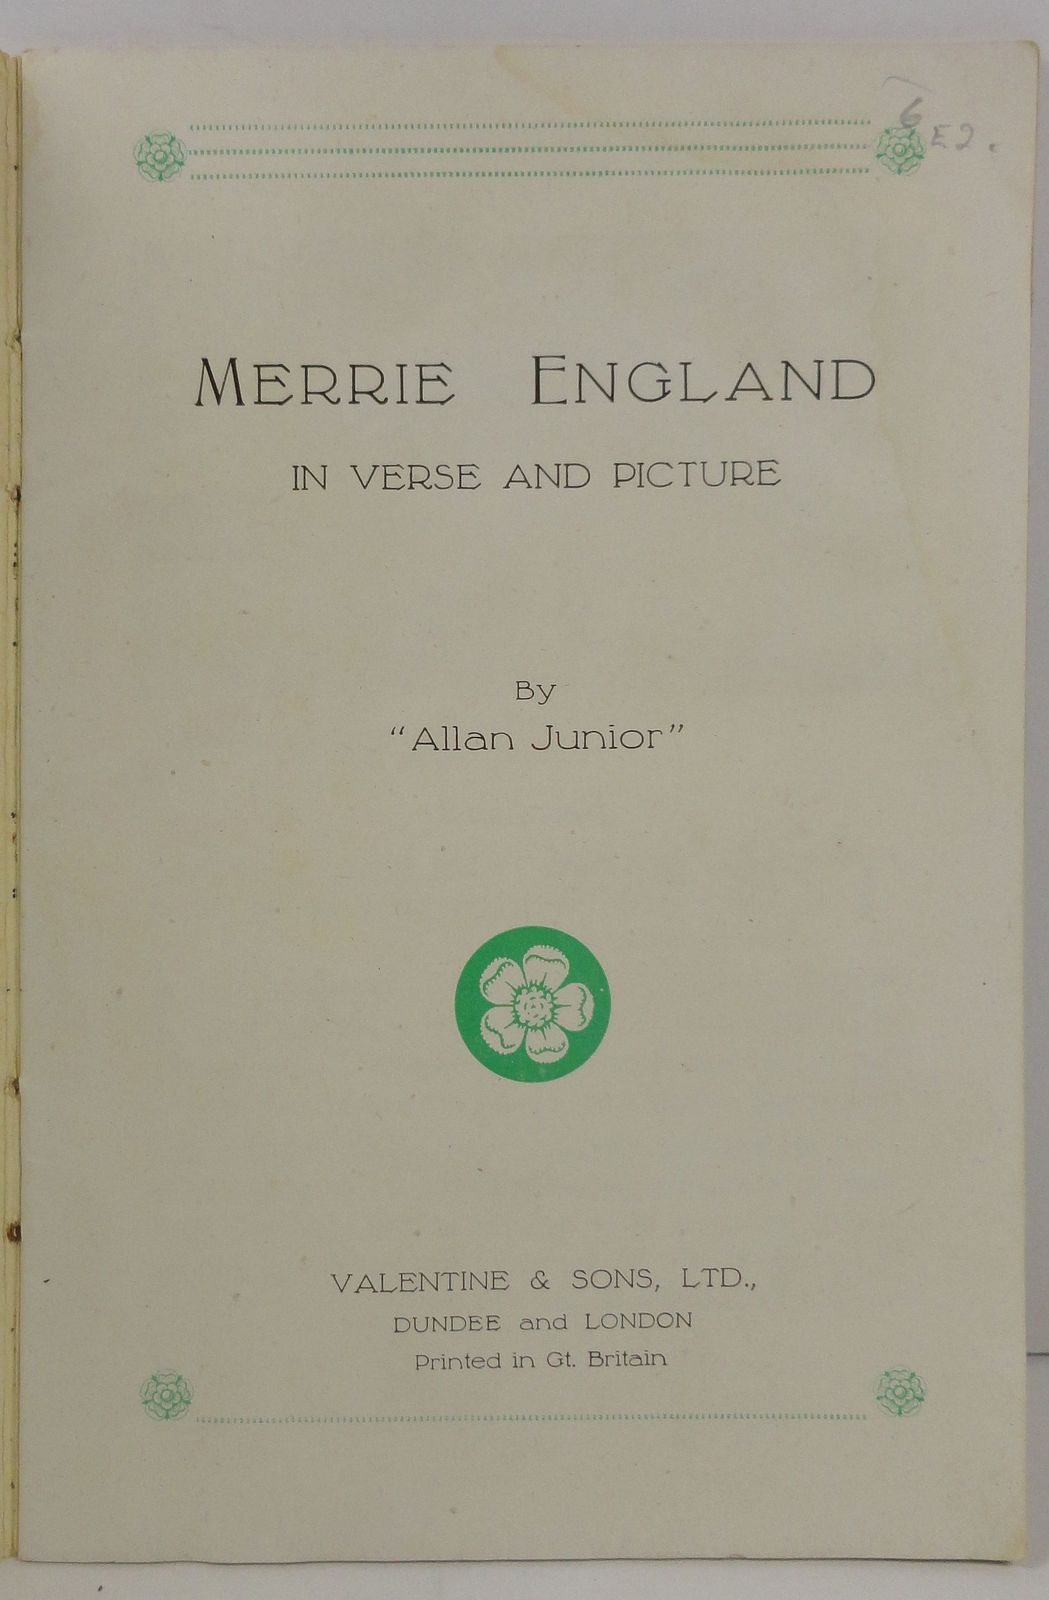 Merrie England in Verse and Picture by Allan Junior